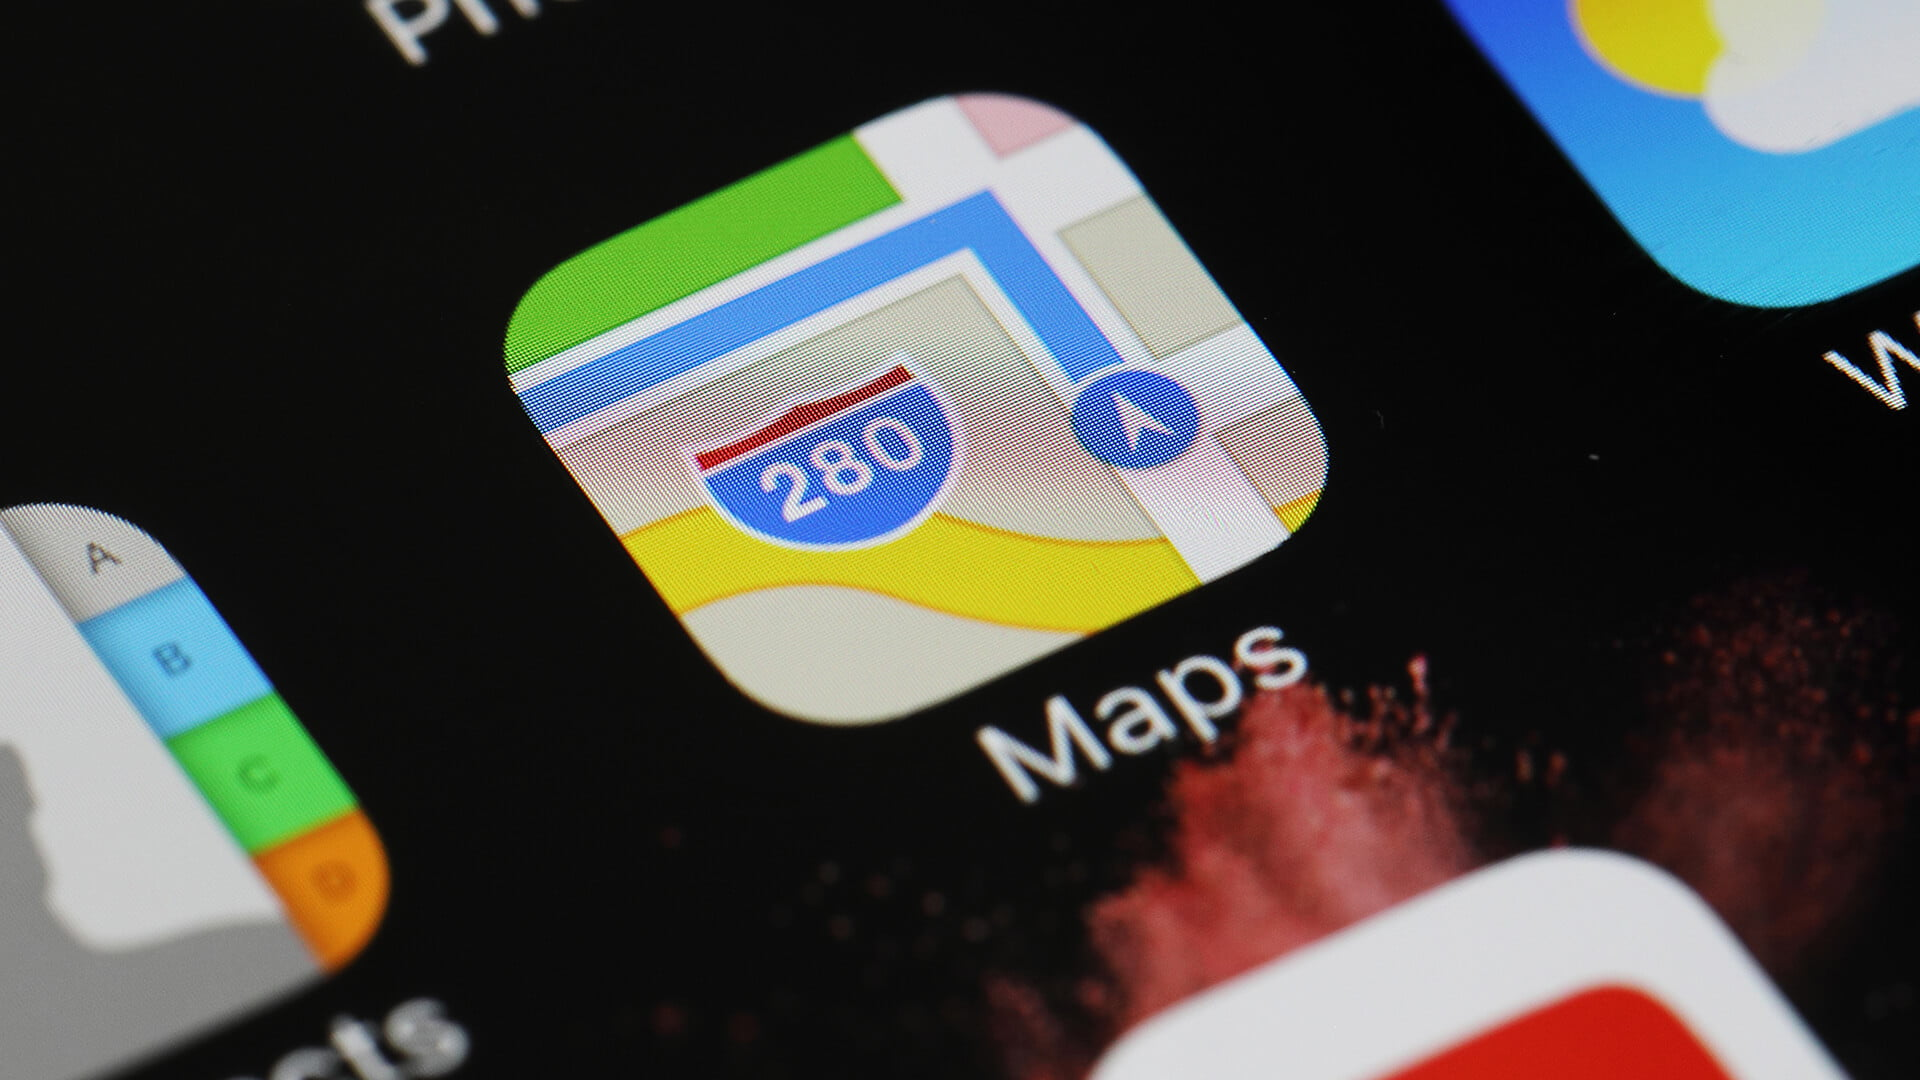 Apple reportedly hiring dozens of new mapping experts and engineers